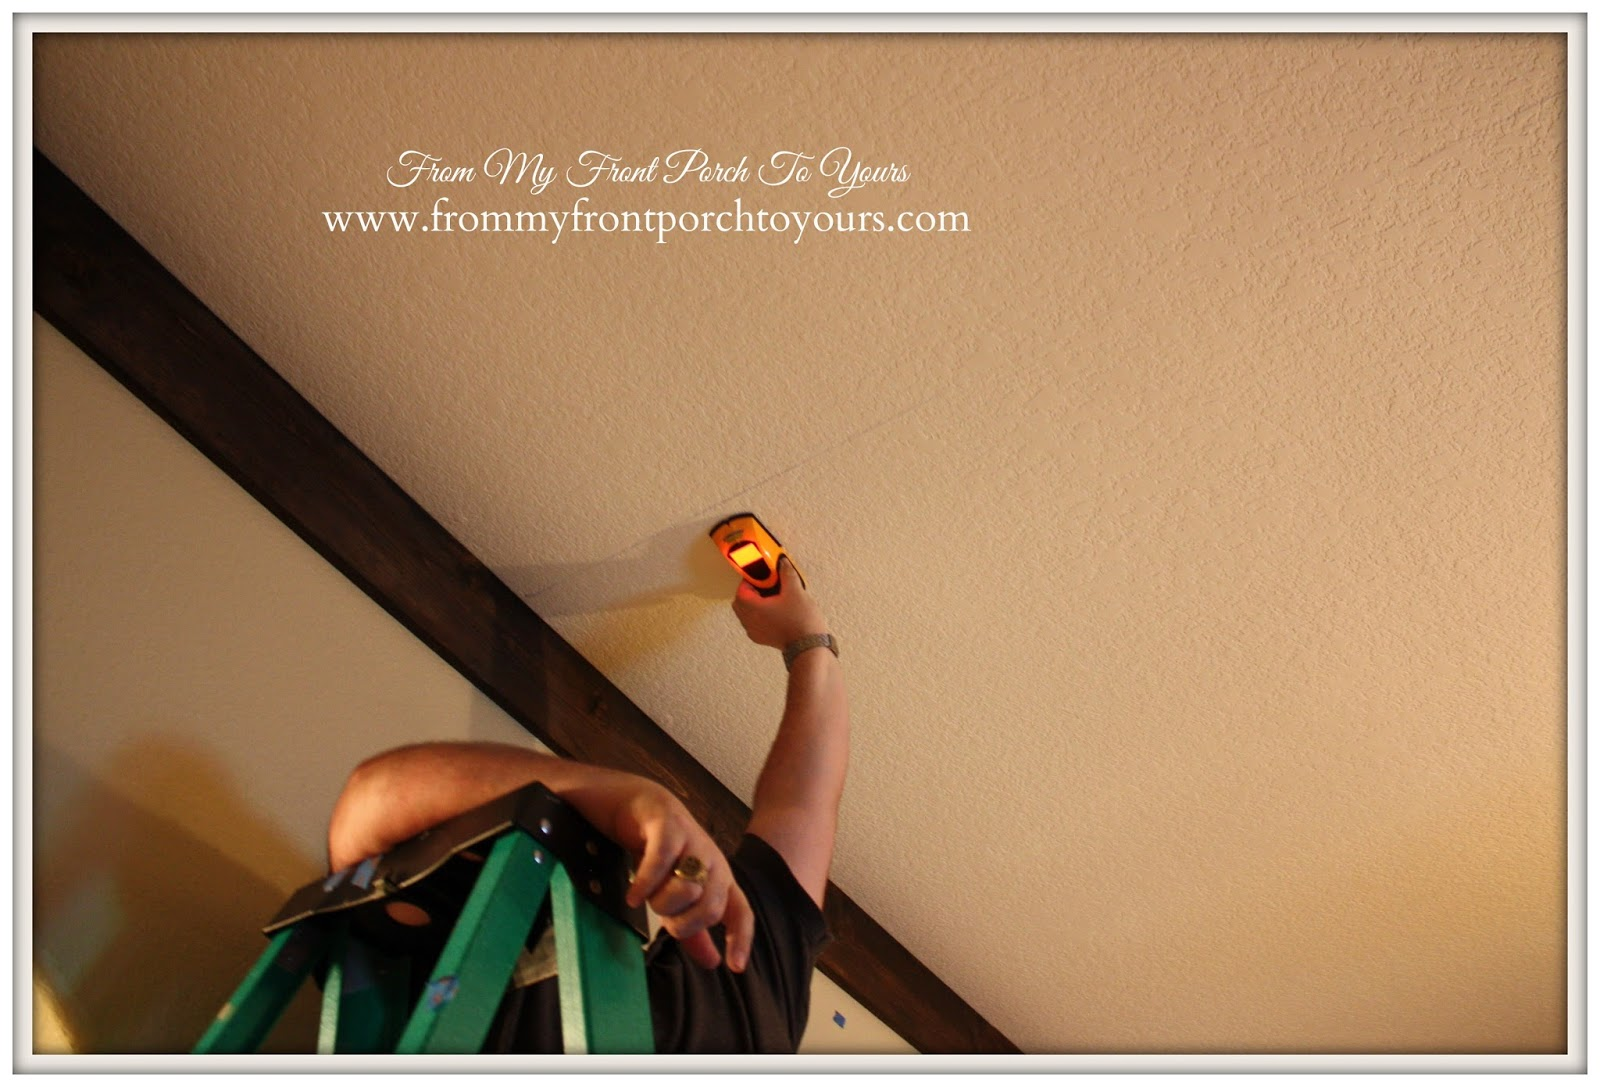 Using a stud finder to ensure wood beams will be secure when installed on the ceiling at From My Front Porch To Yours.